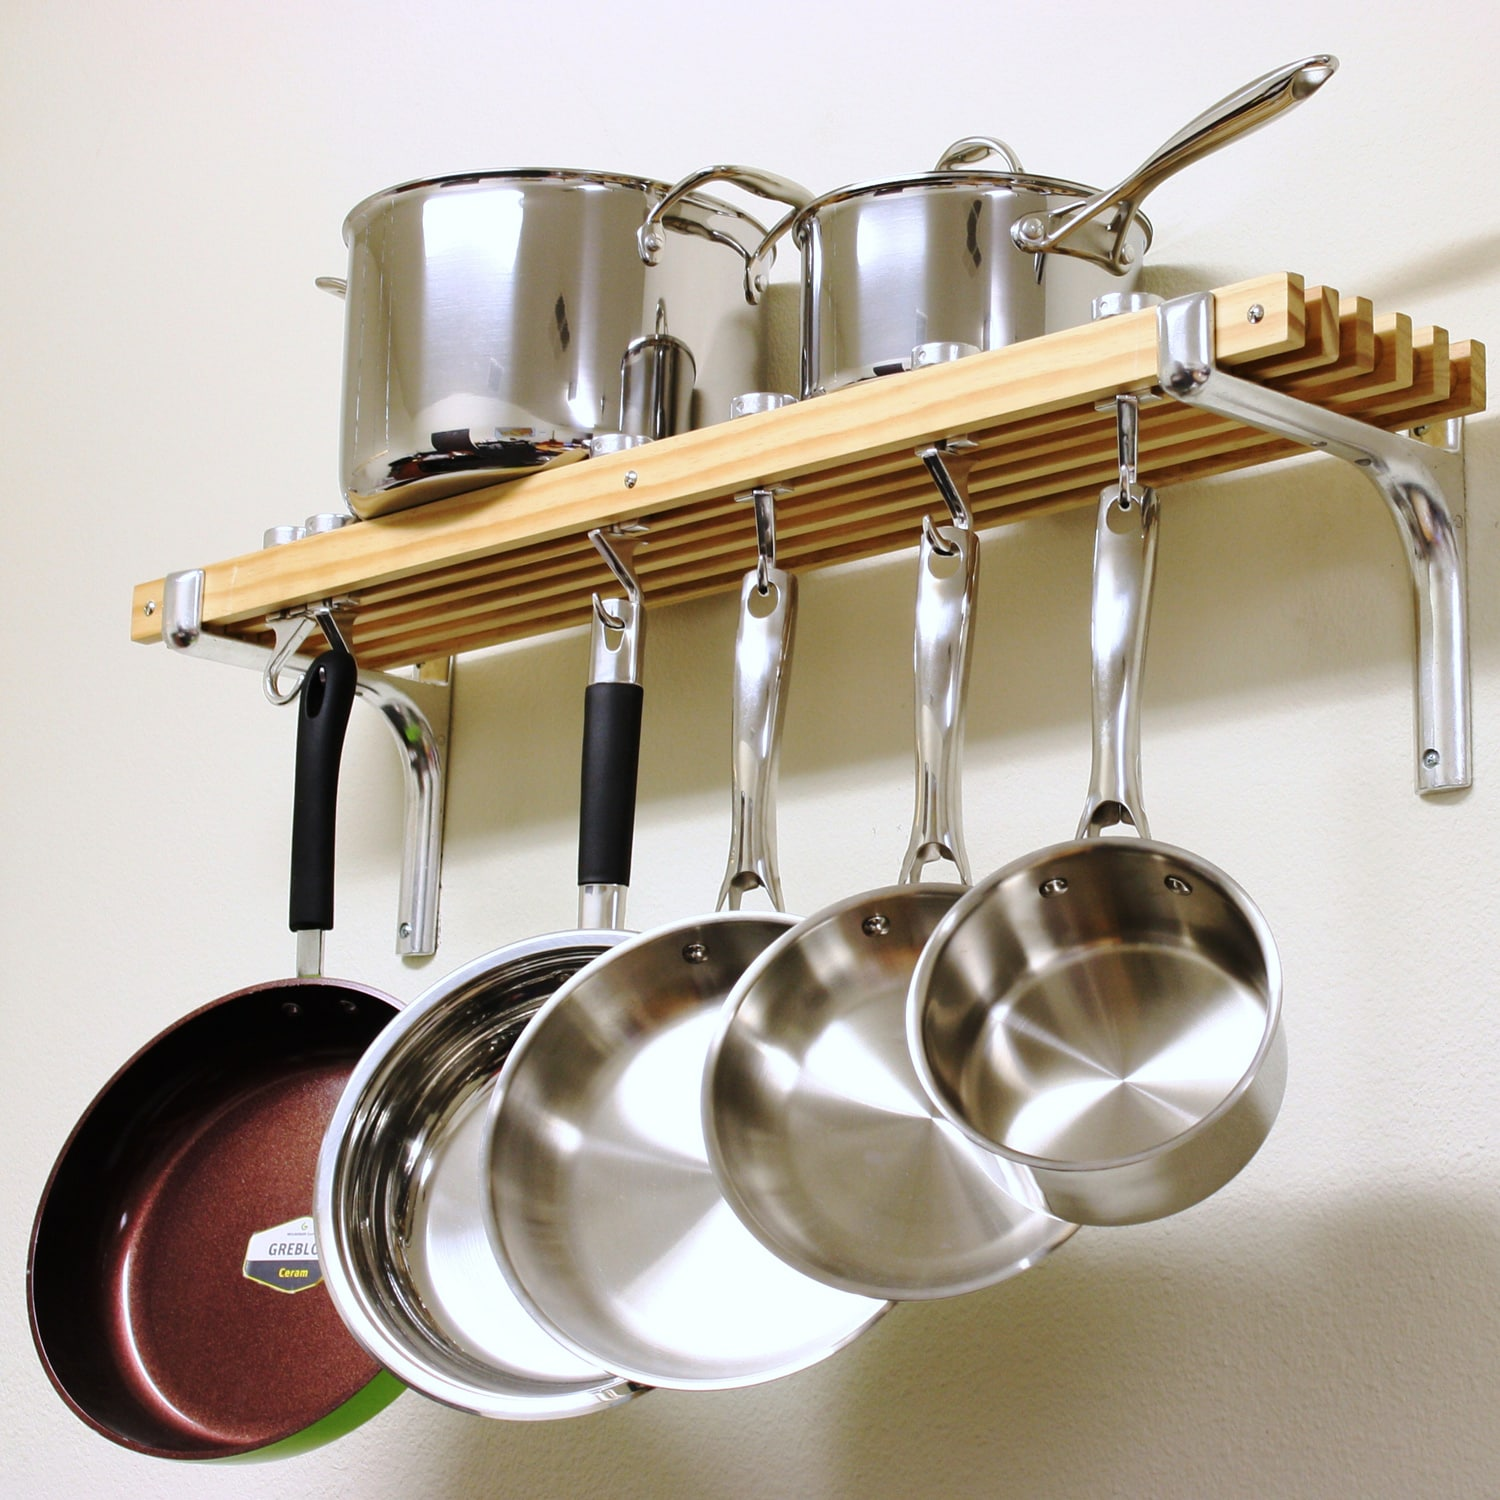 in along together pans sparkling hanging as hanger han rack racks pot wells kitchen pan engrossing with pots lights and kitchendesign gh for fetching